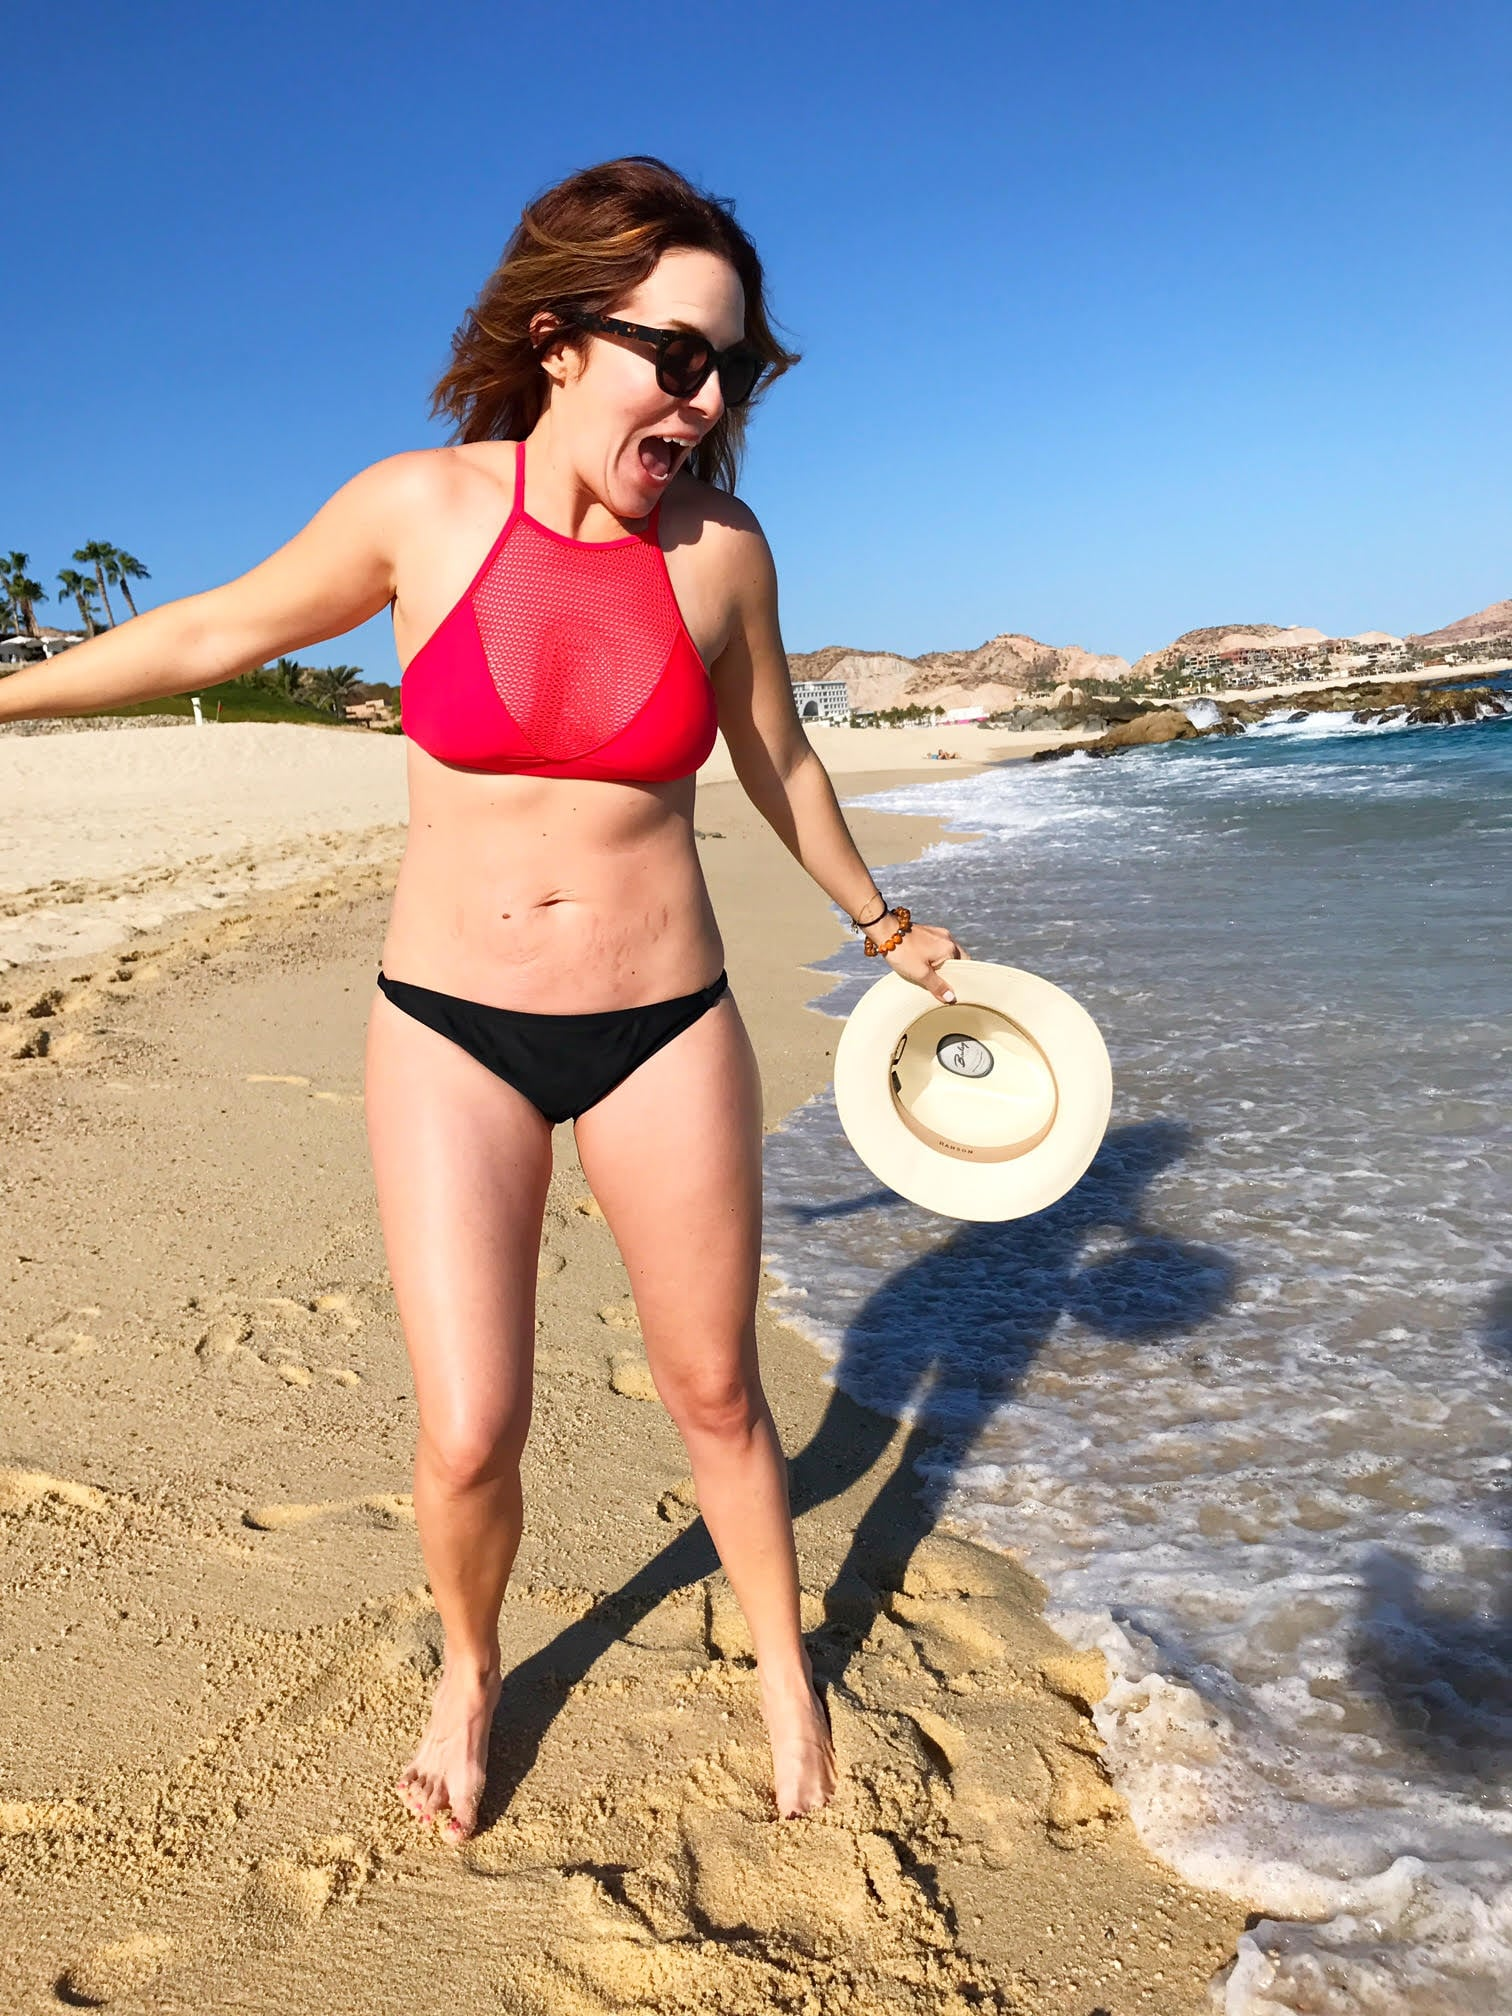 With her slim body and Light brown hairtype without bra (cup size 40B) on the beach in bikini